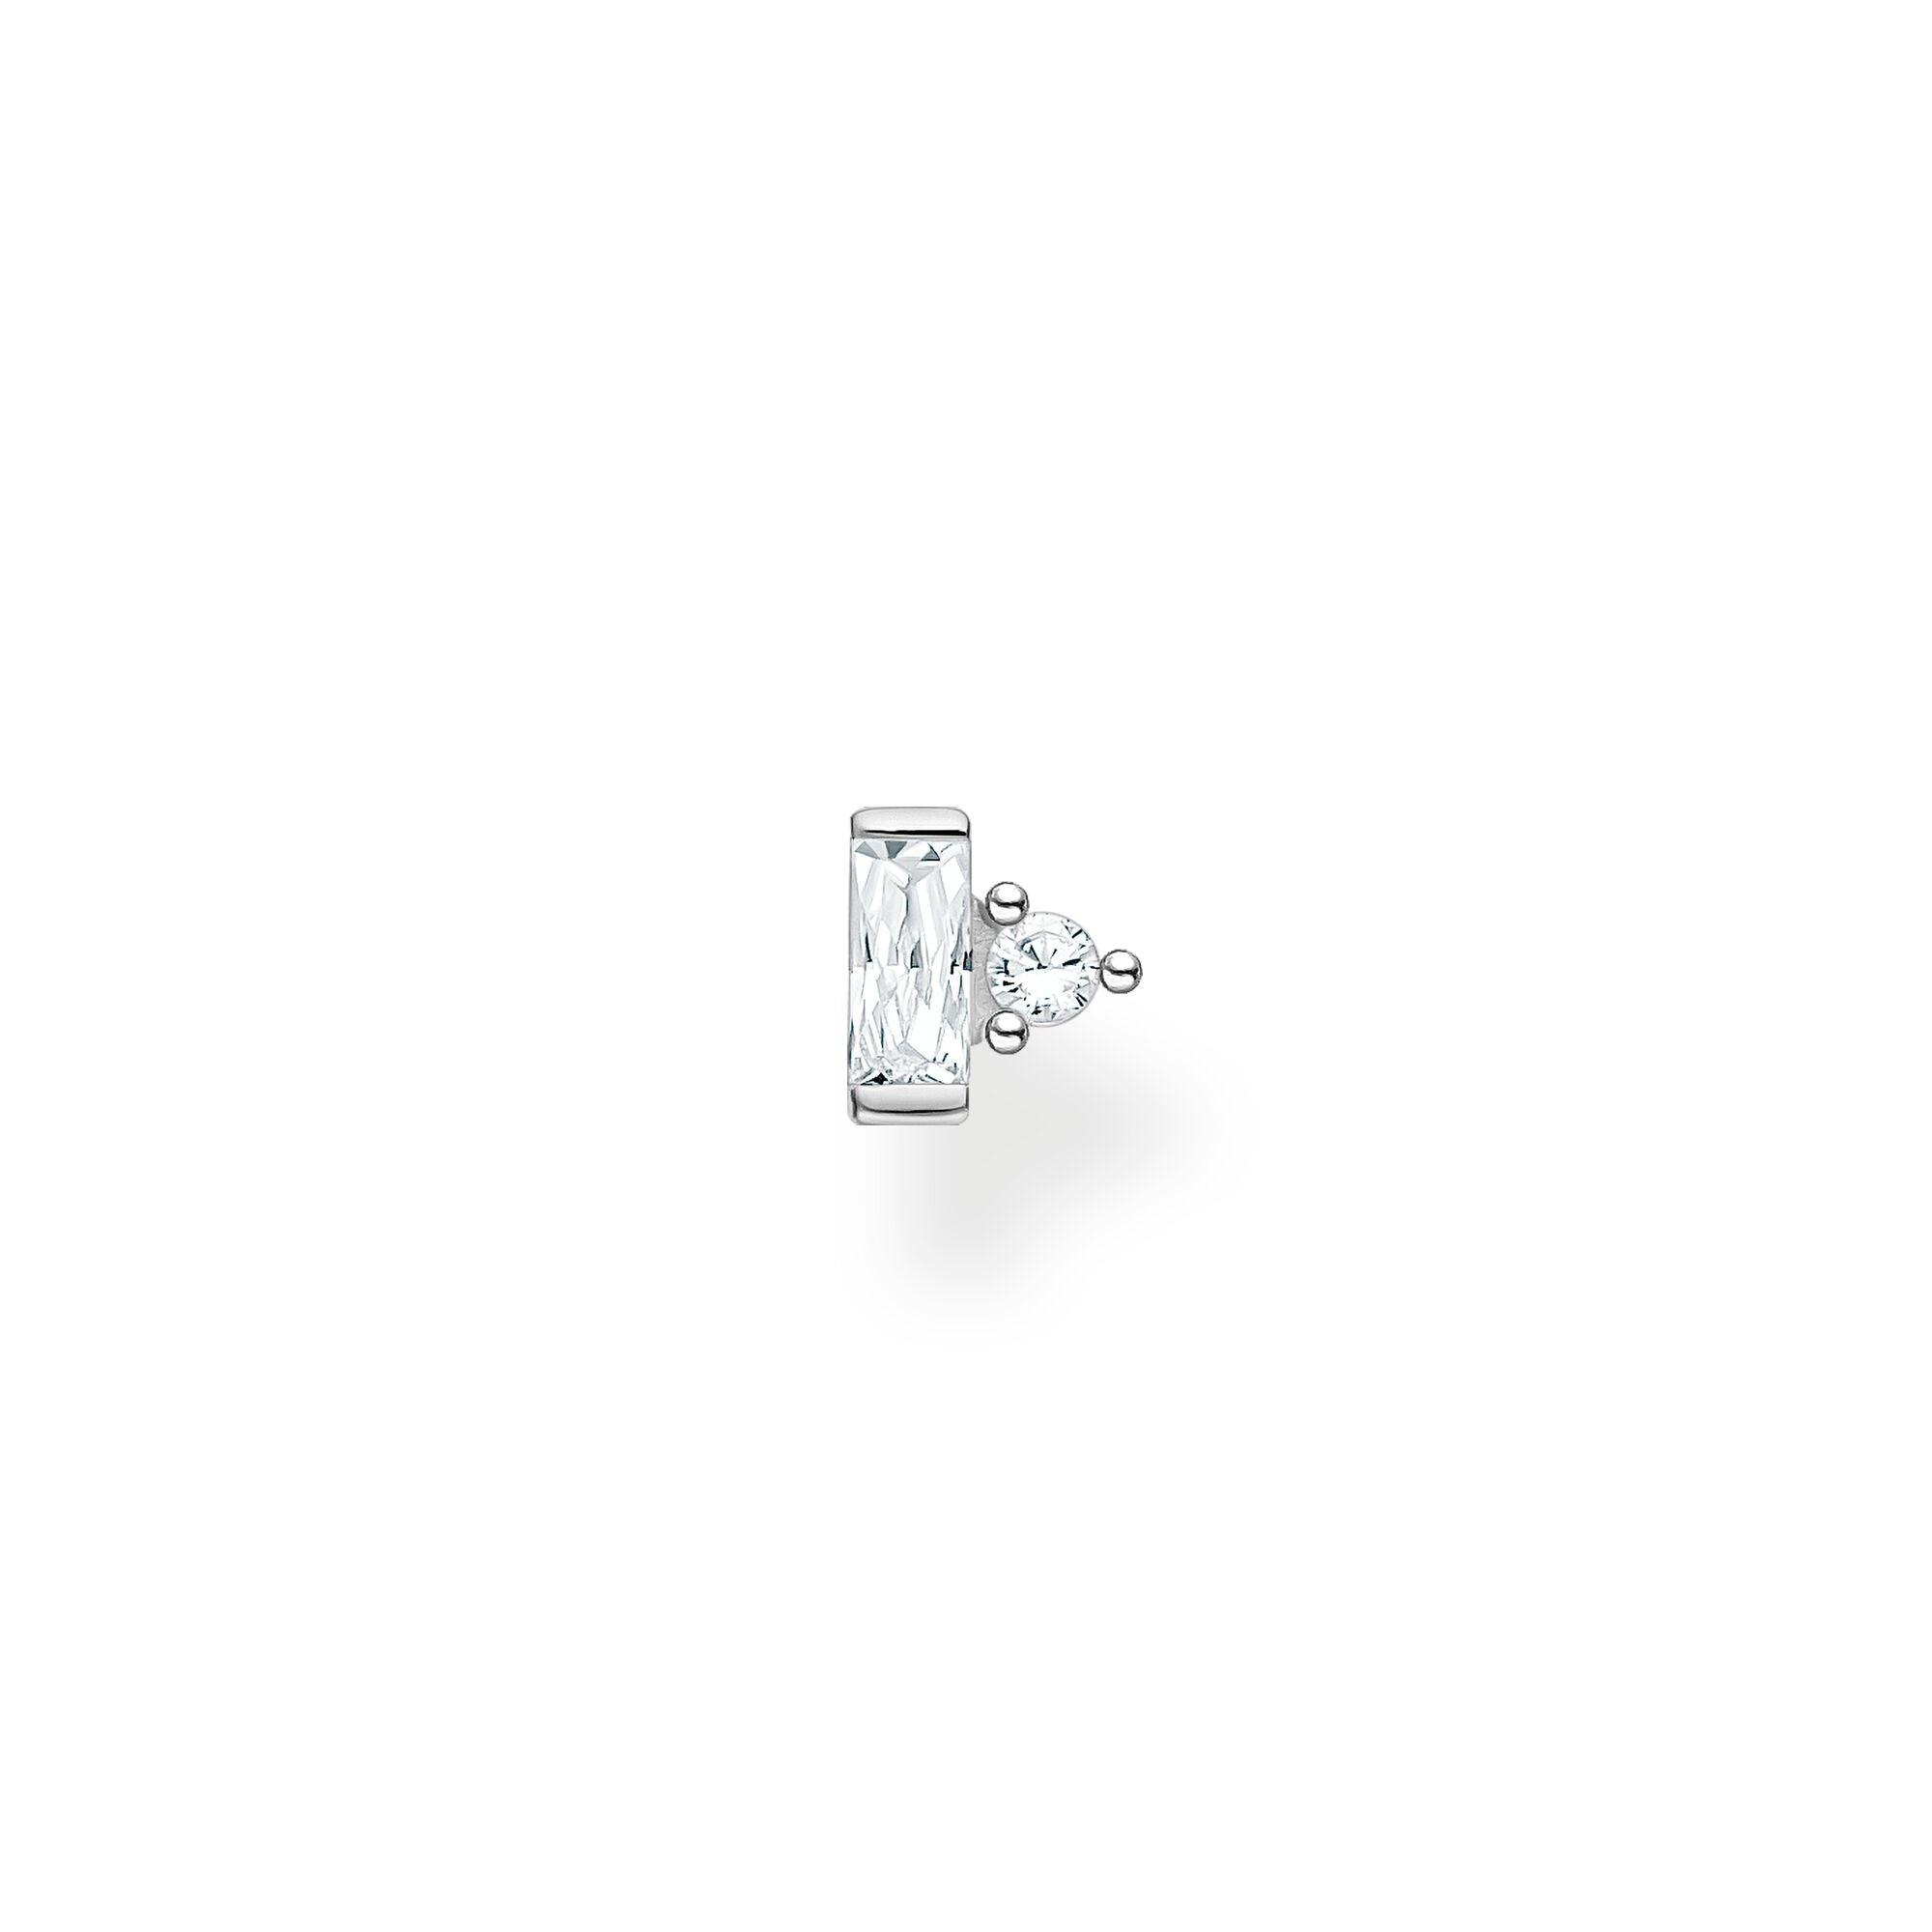 Thomas Sabo sterling silver and white baguette stone with round stone accent, single stud earring